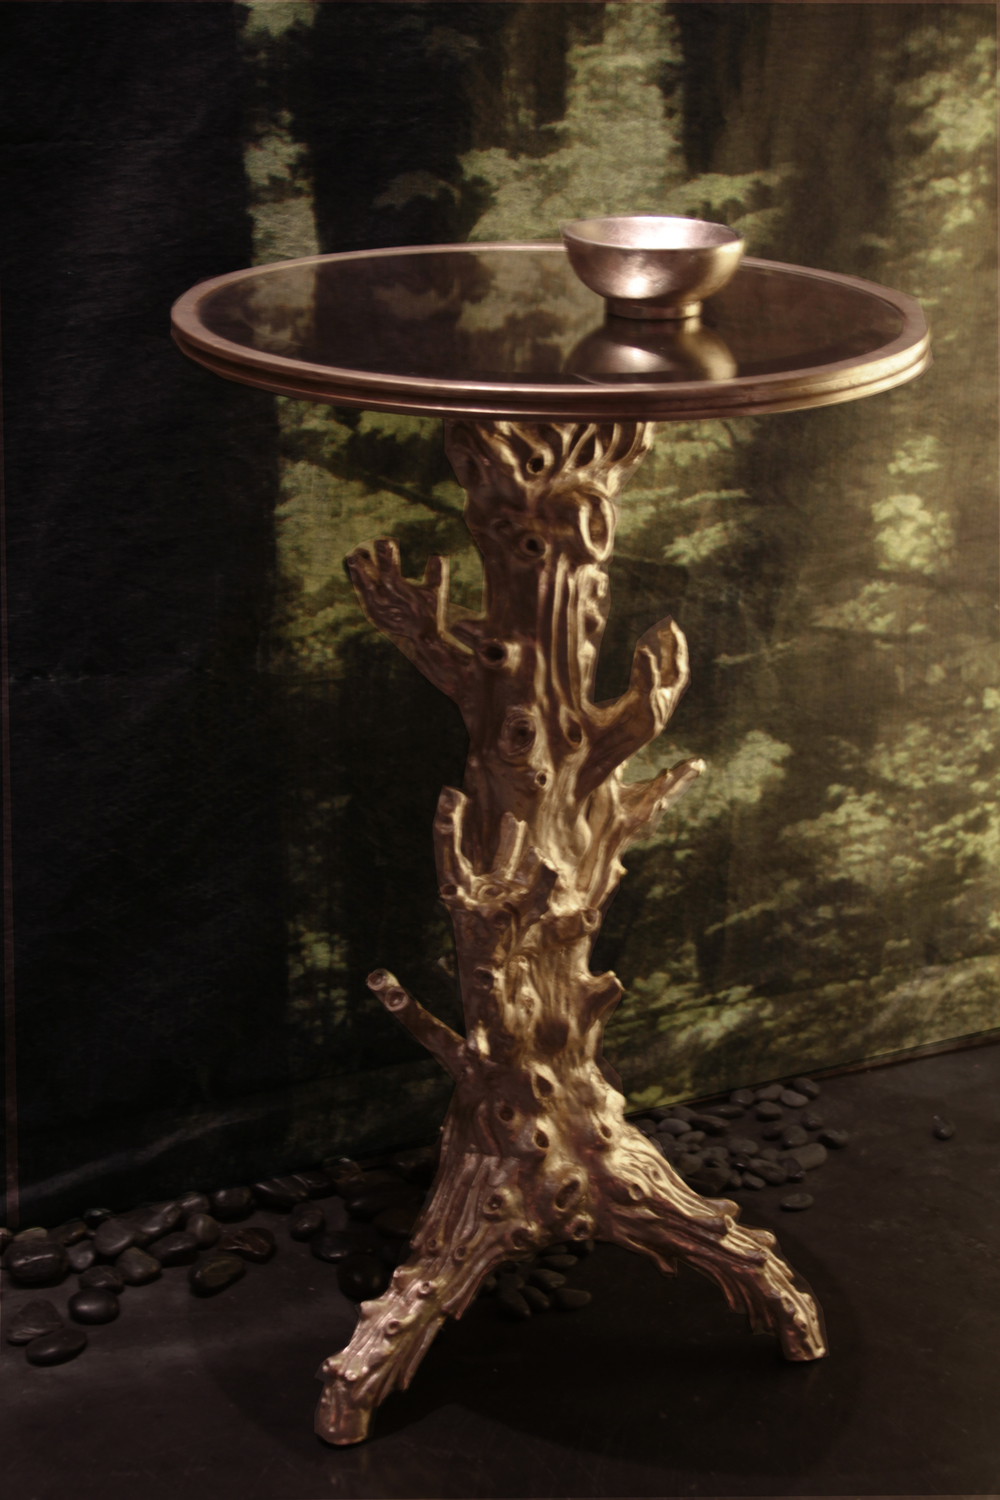 14_12_Dark Fairytale_Twig Side Table.jpg